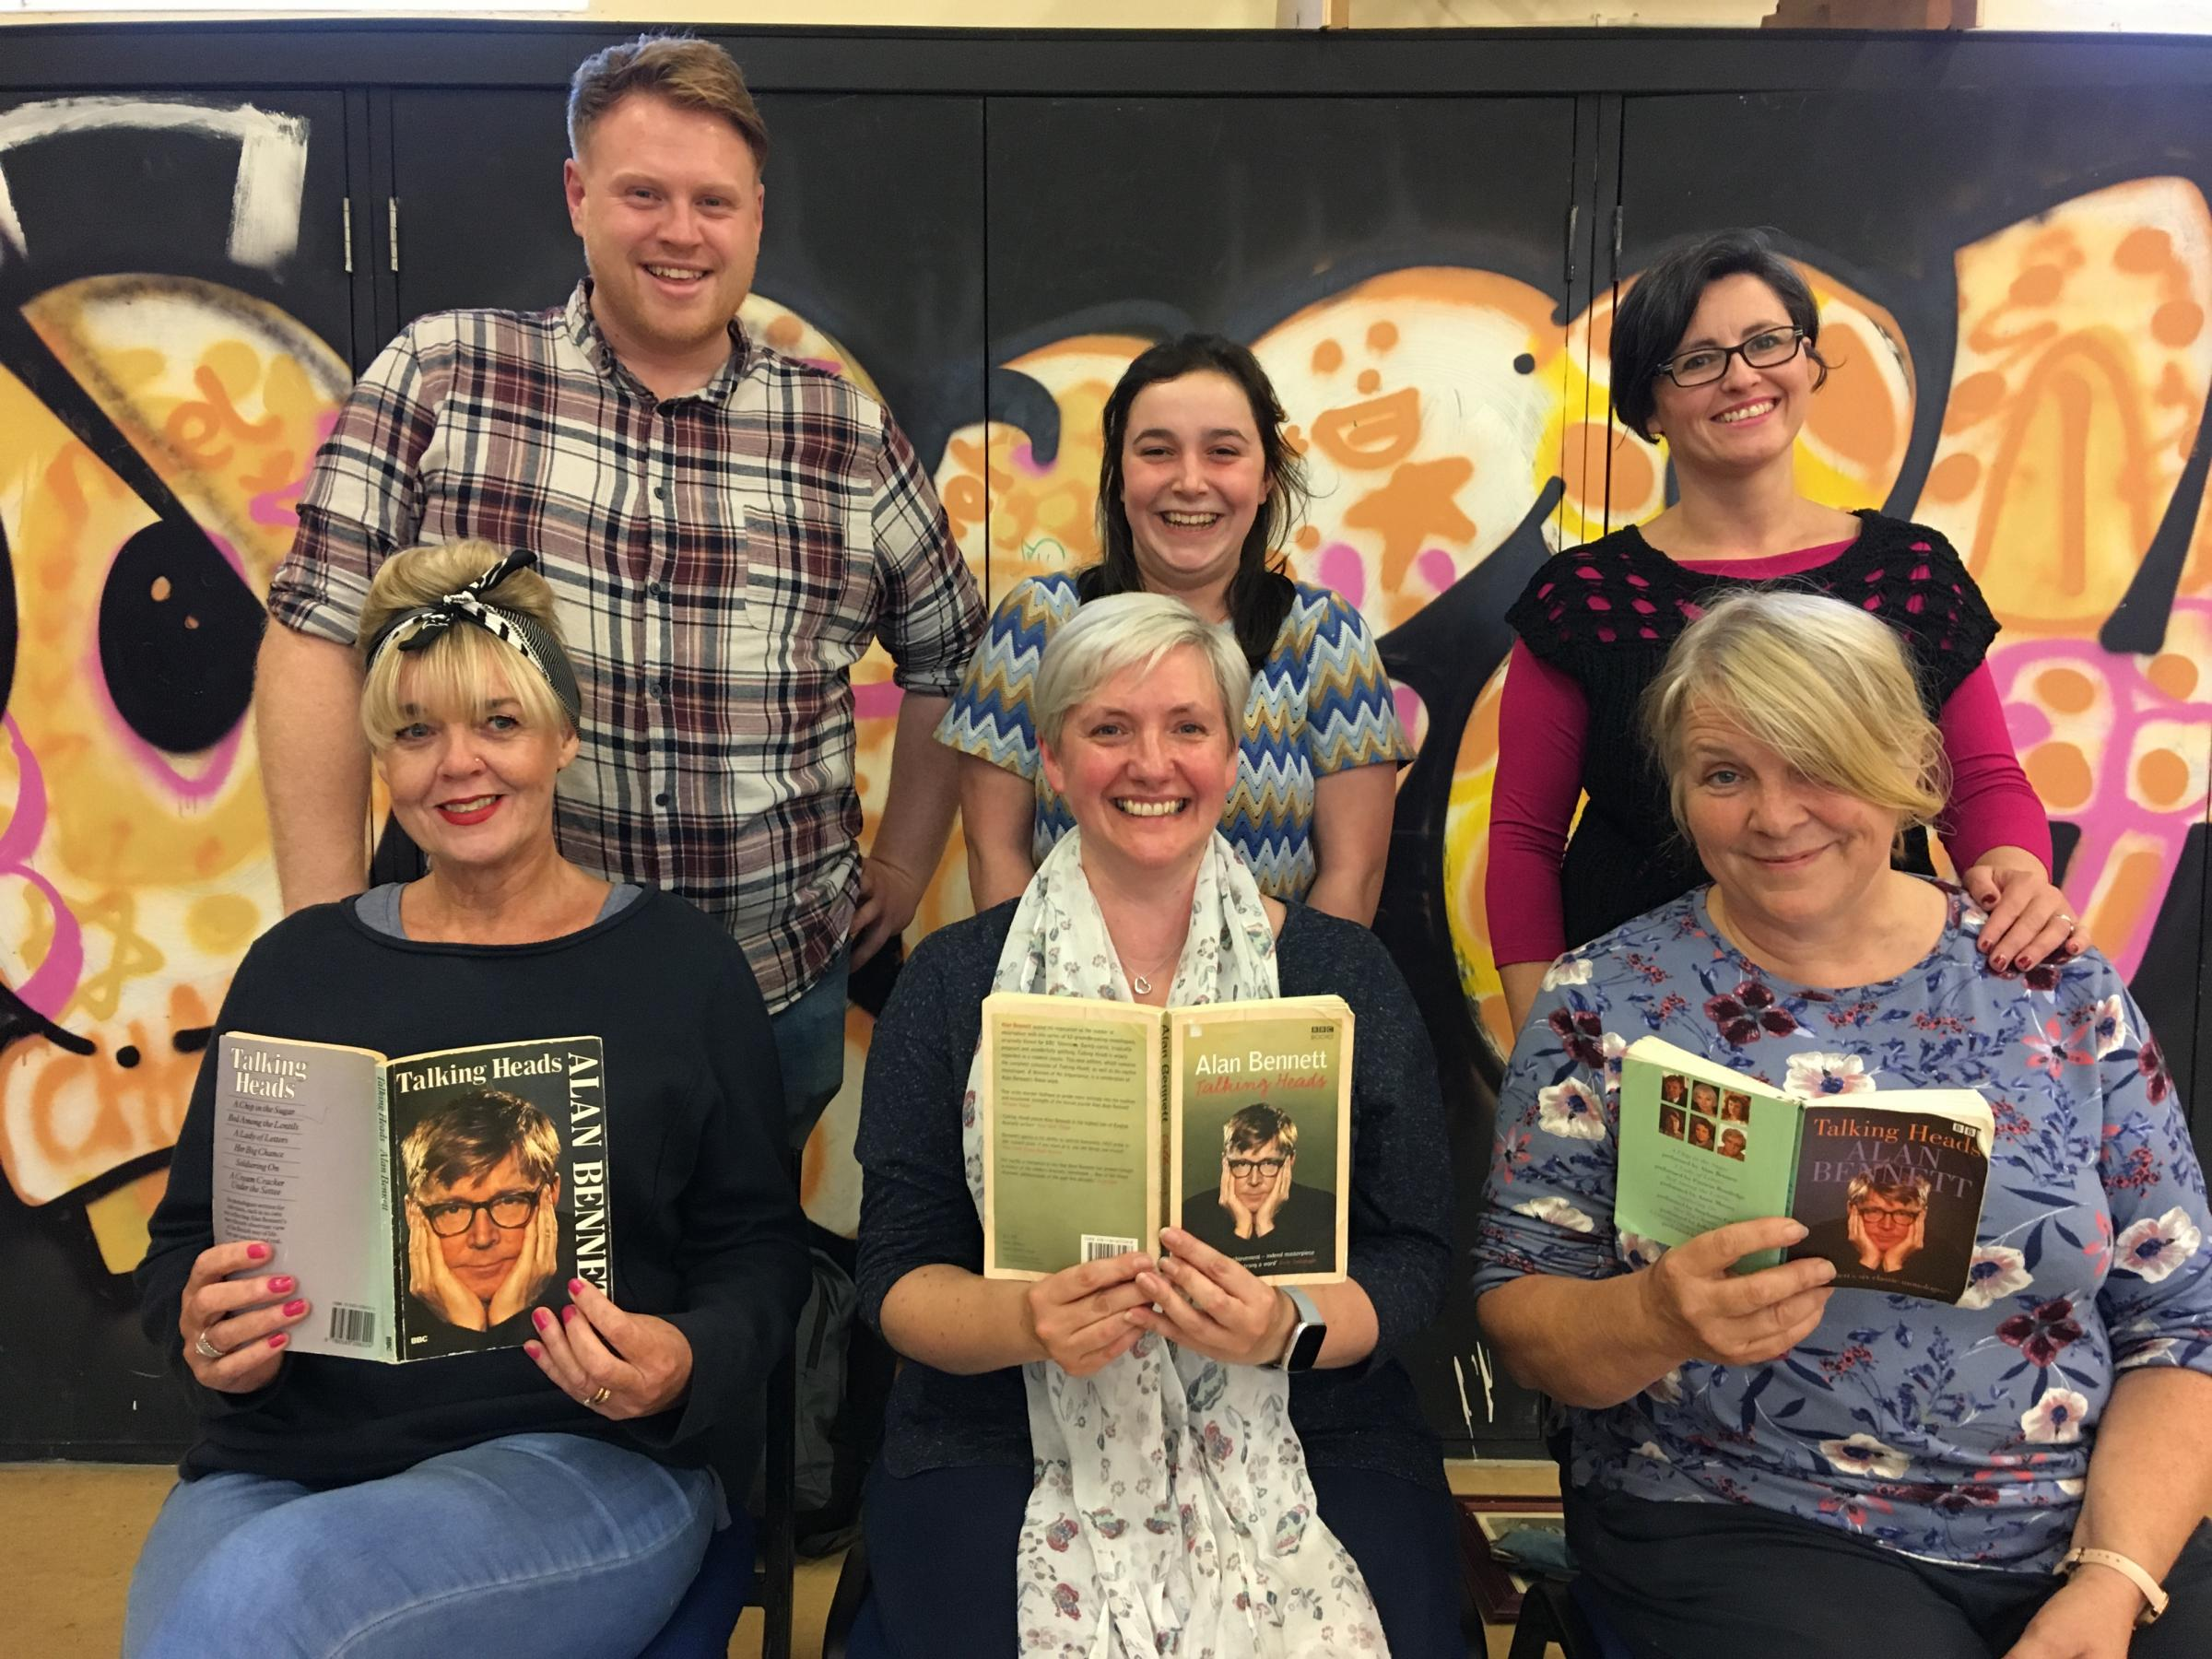 The Rowntree Players company for Talking Heads: standing, directors Nik Briggs, Imogen Wood and Angela Stone; seated, cast members Jeanette Hunter, Kathryn Addison and Helen Sally Wilson